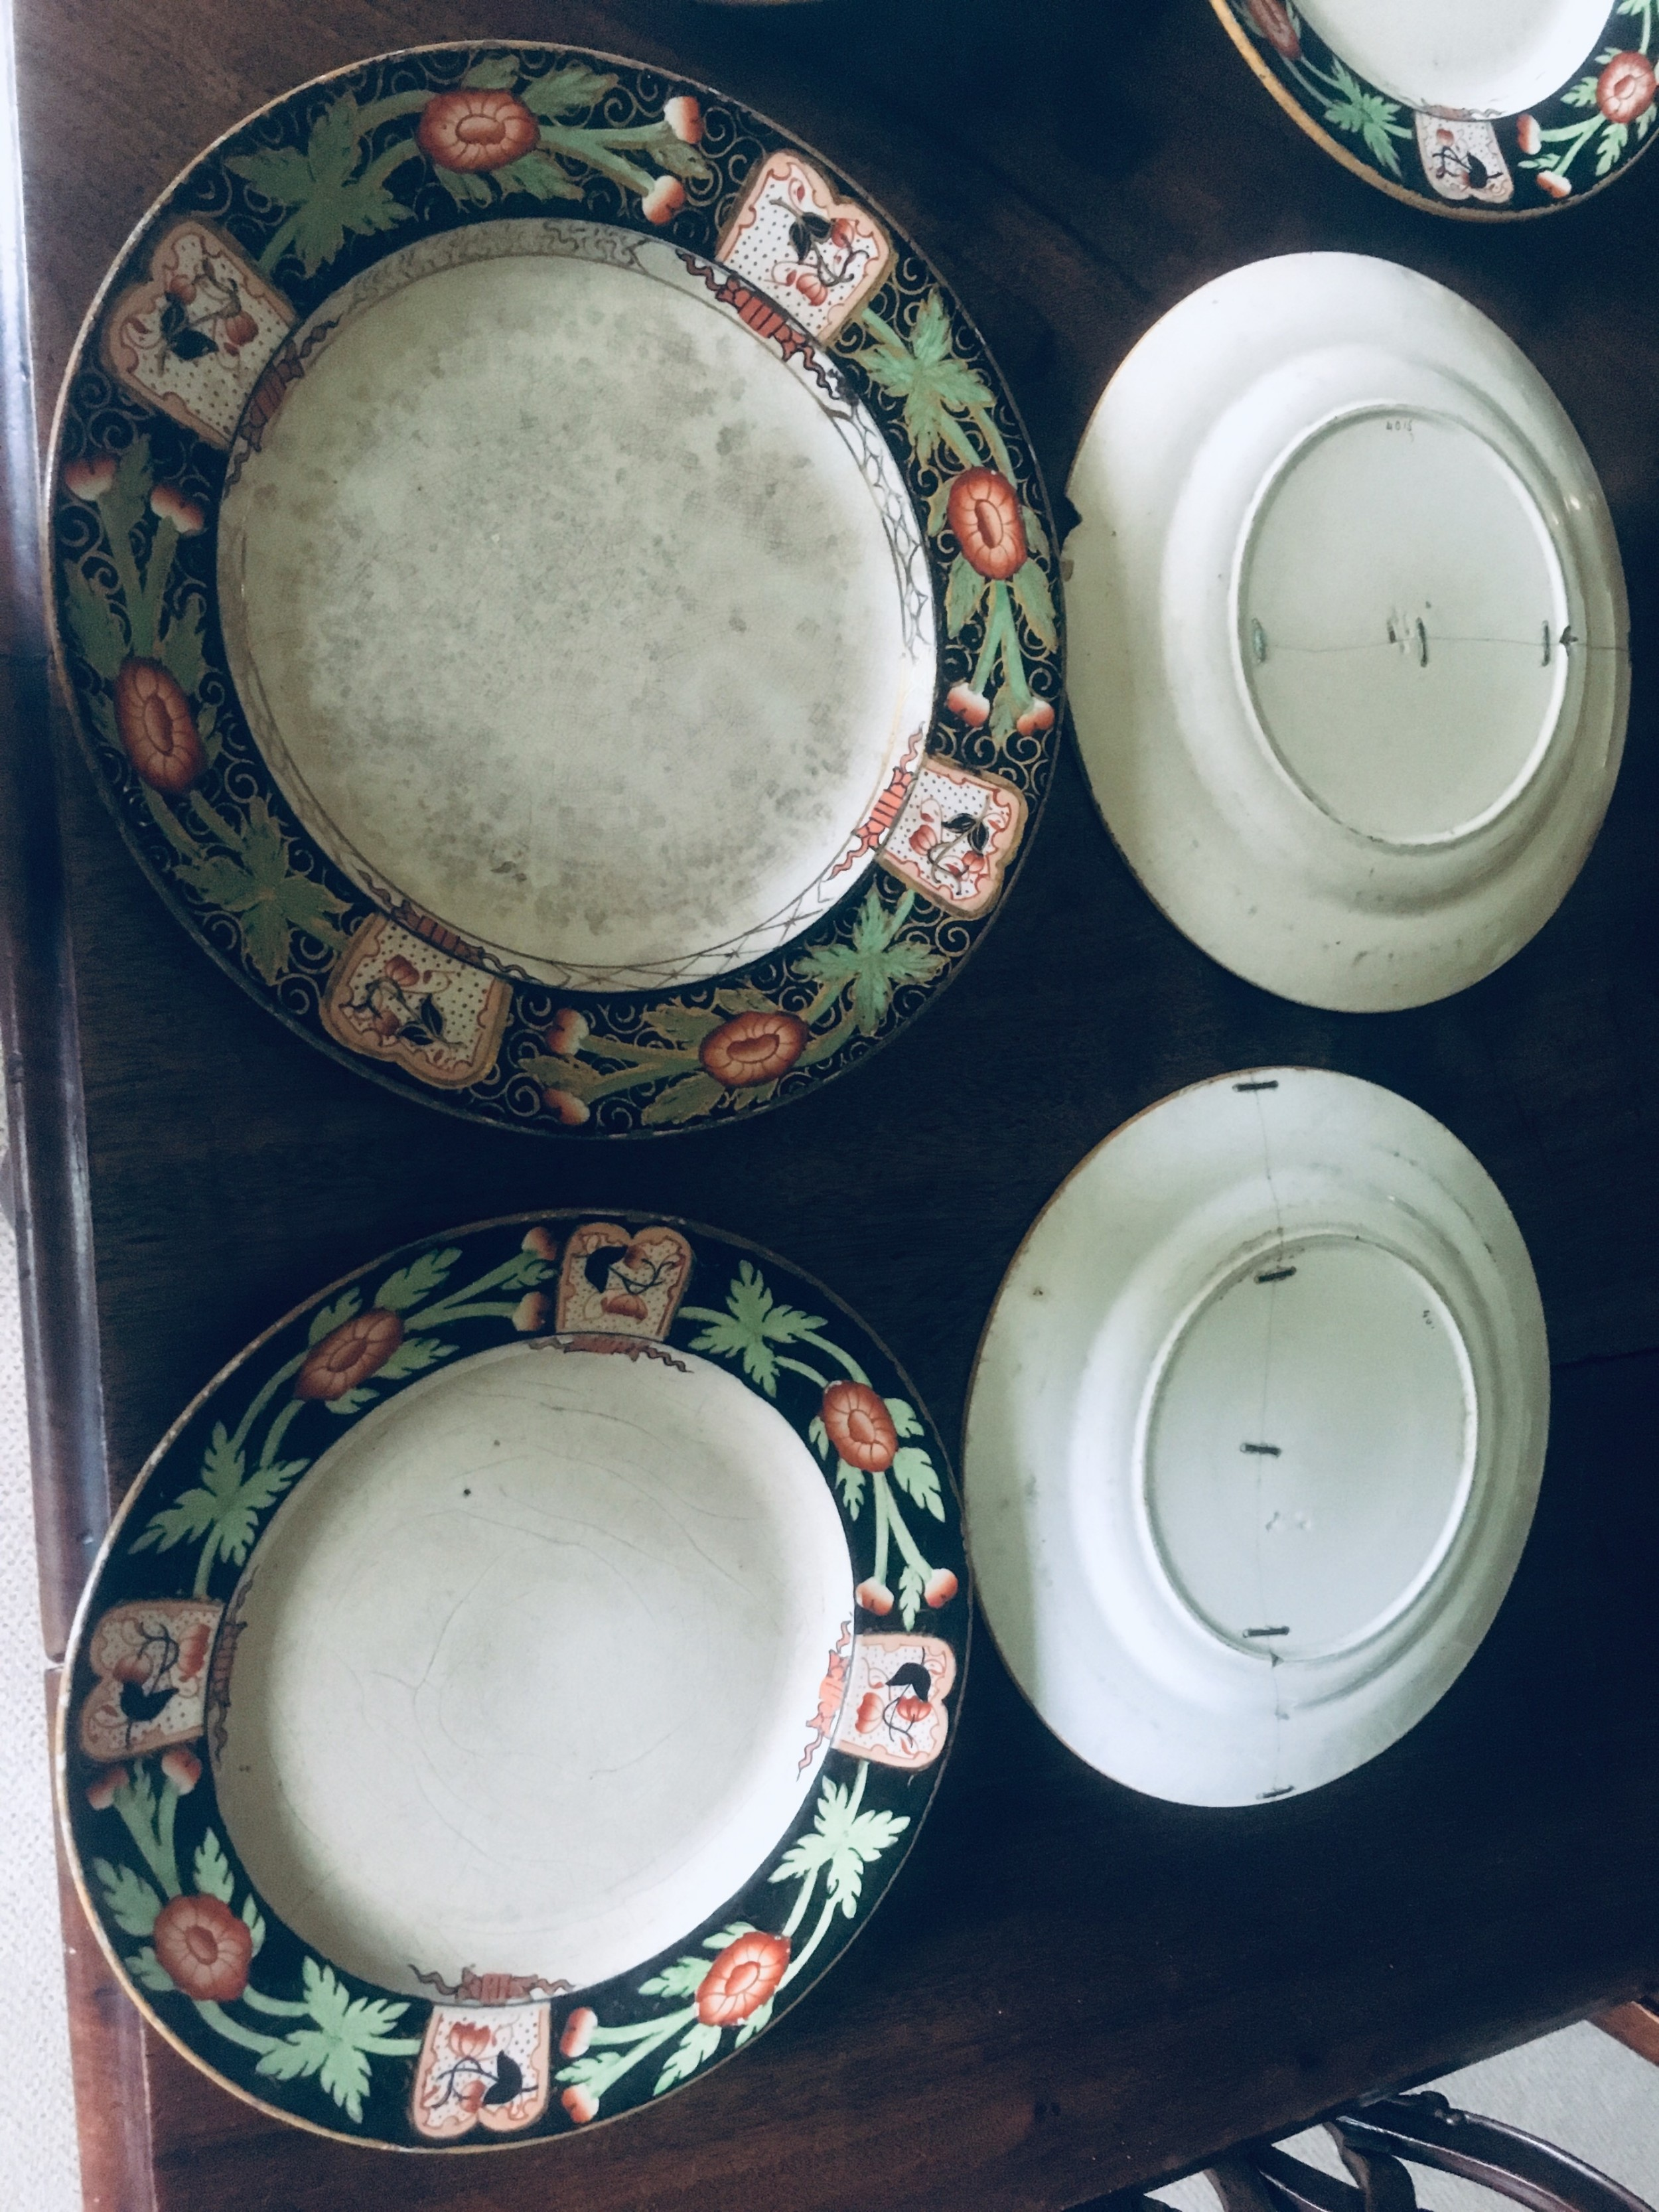 magnificent seven faded gilt imari patern ironstone china plates a few chips scratched used and faded stapled and glued fantastic